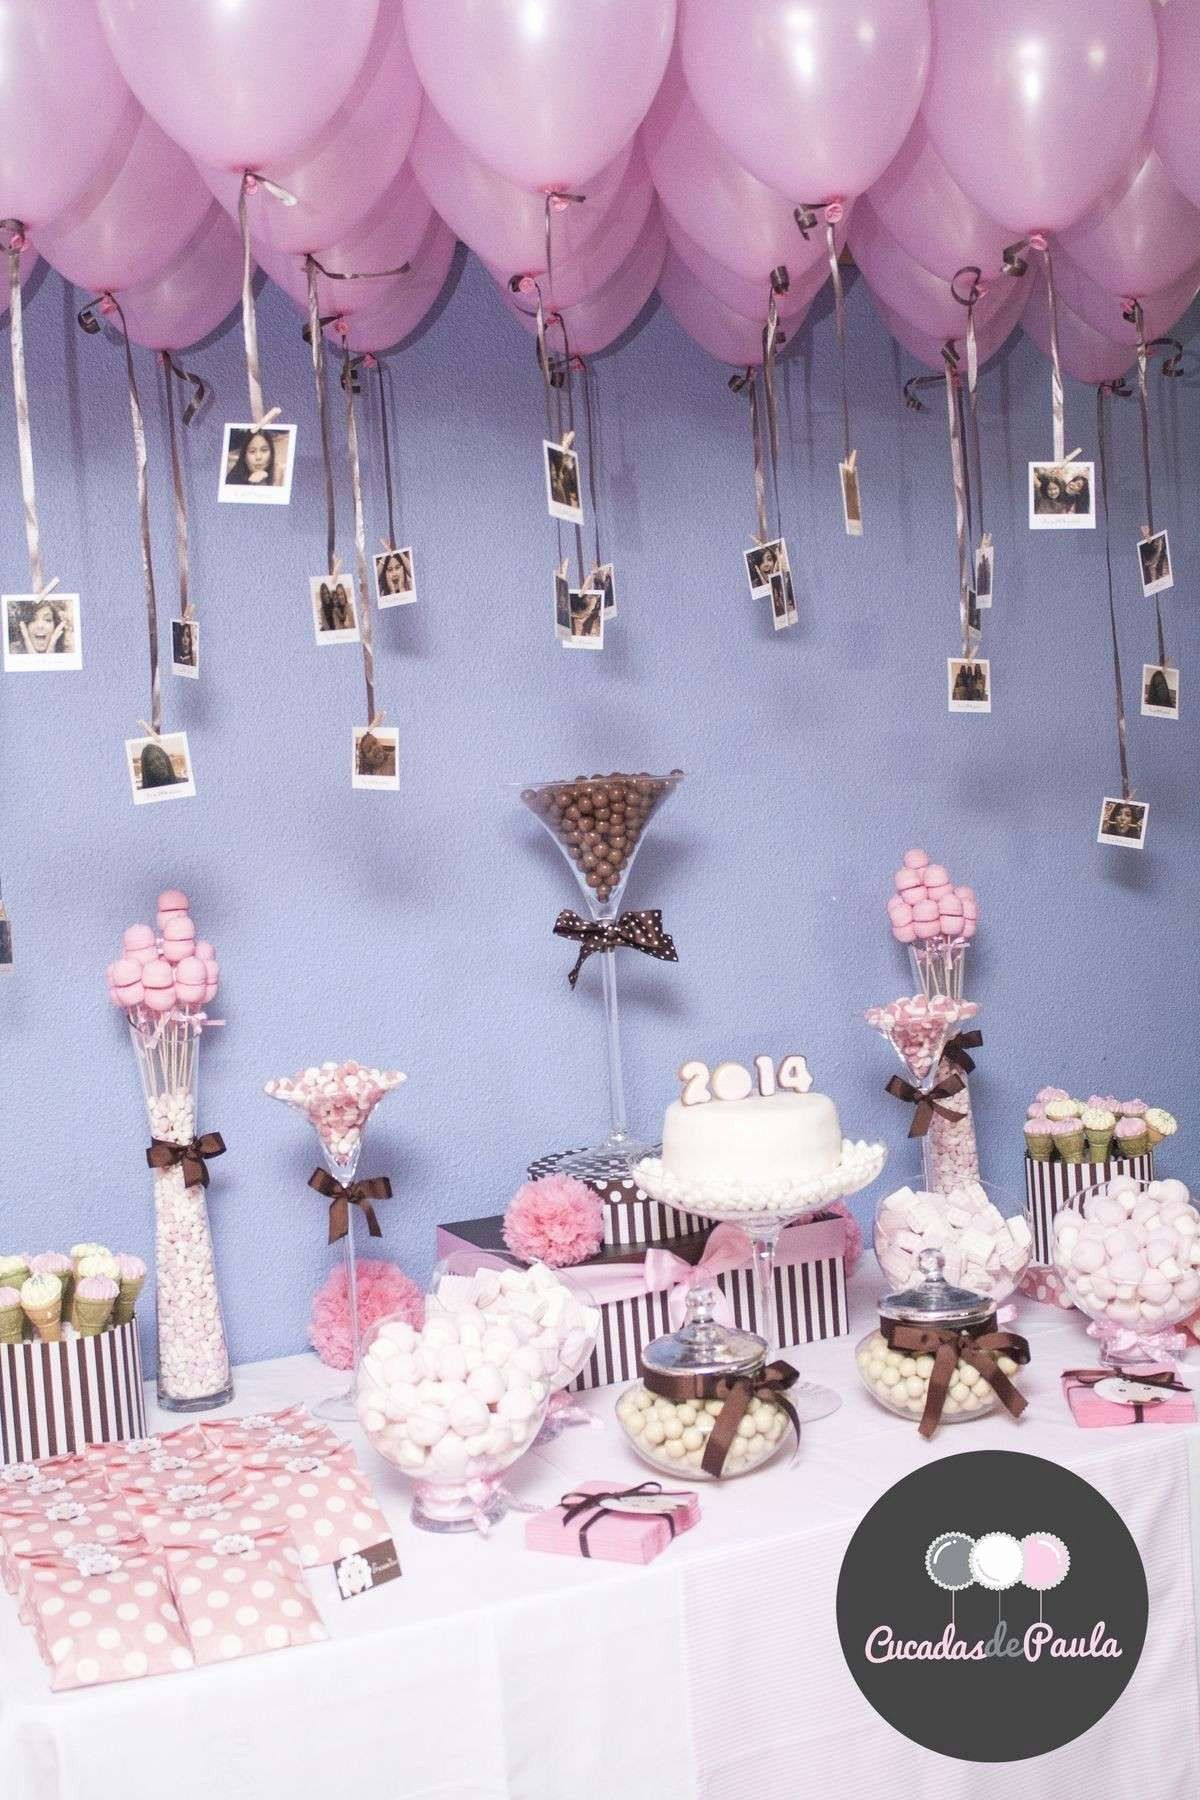 1st Birthday Decoration Ideas At Home For Boy New Inspirational Decoration Birthday Decorations Ballerina Party Decorations Bridal Shower Balloons Decorations